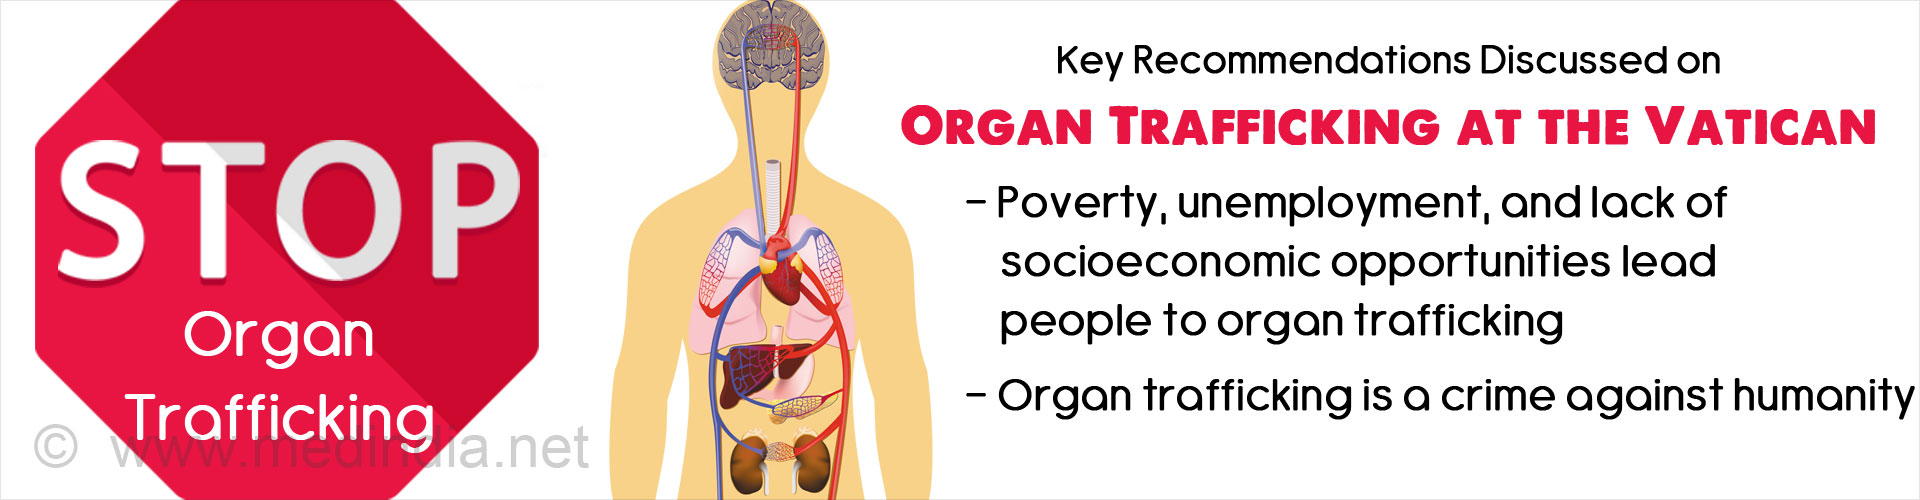 Key Recommendations Discussed on Organ Trafficking at the Vatican